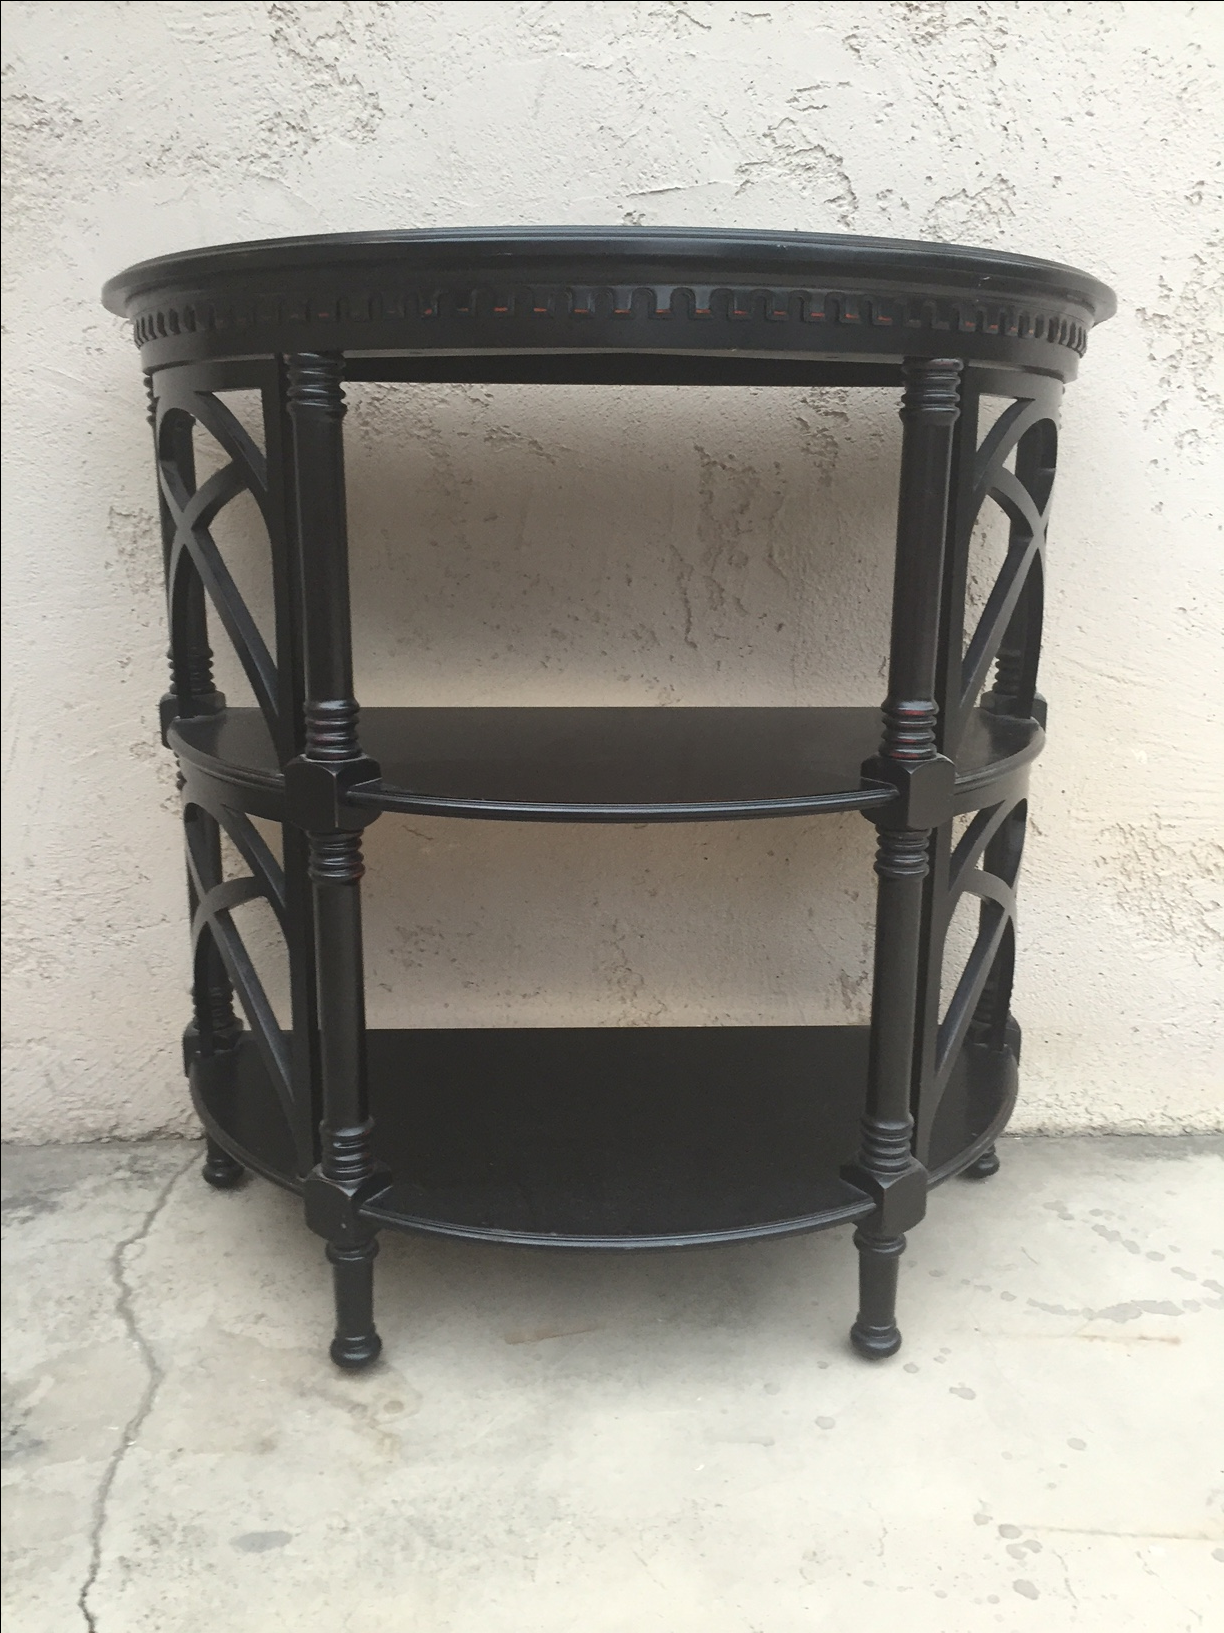 Chinoiserie Or Asian Inspired Three Tiered Wood Demuline Table With Bamboo  Shaped Accents Painted Black